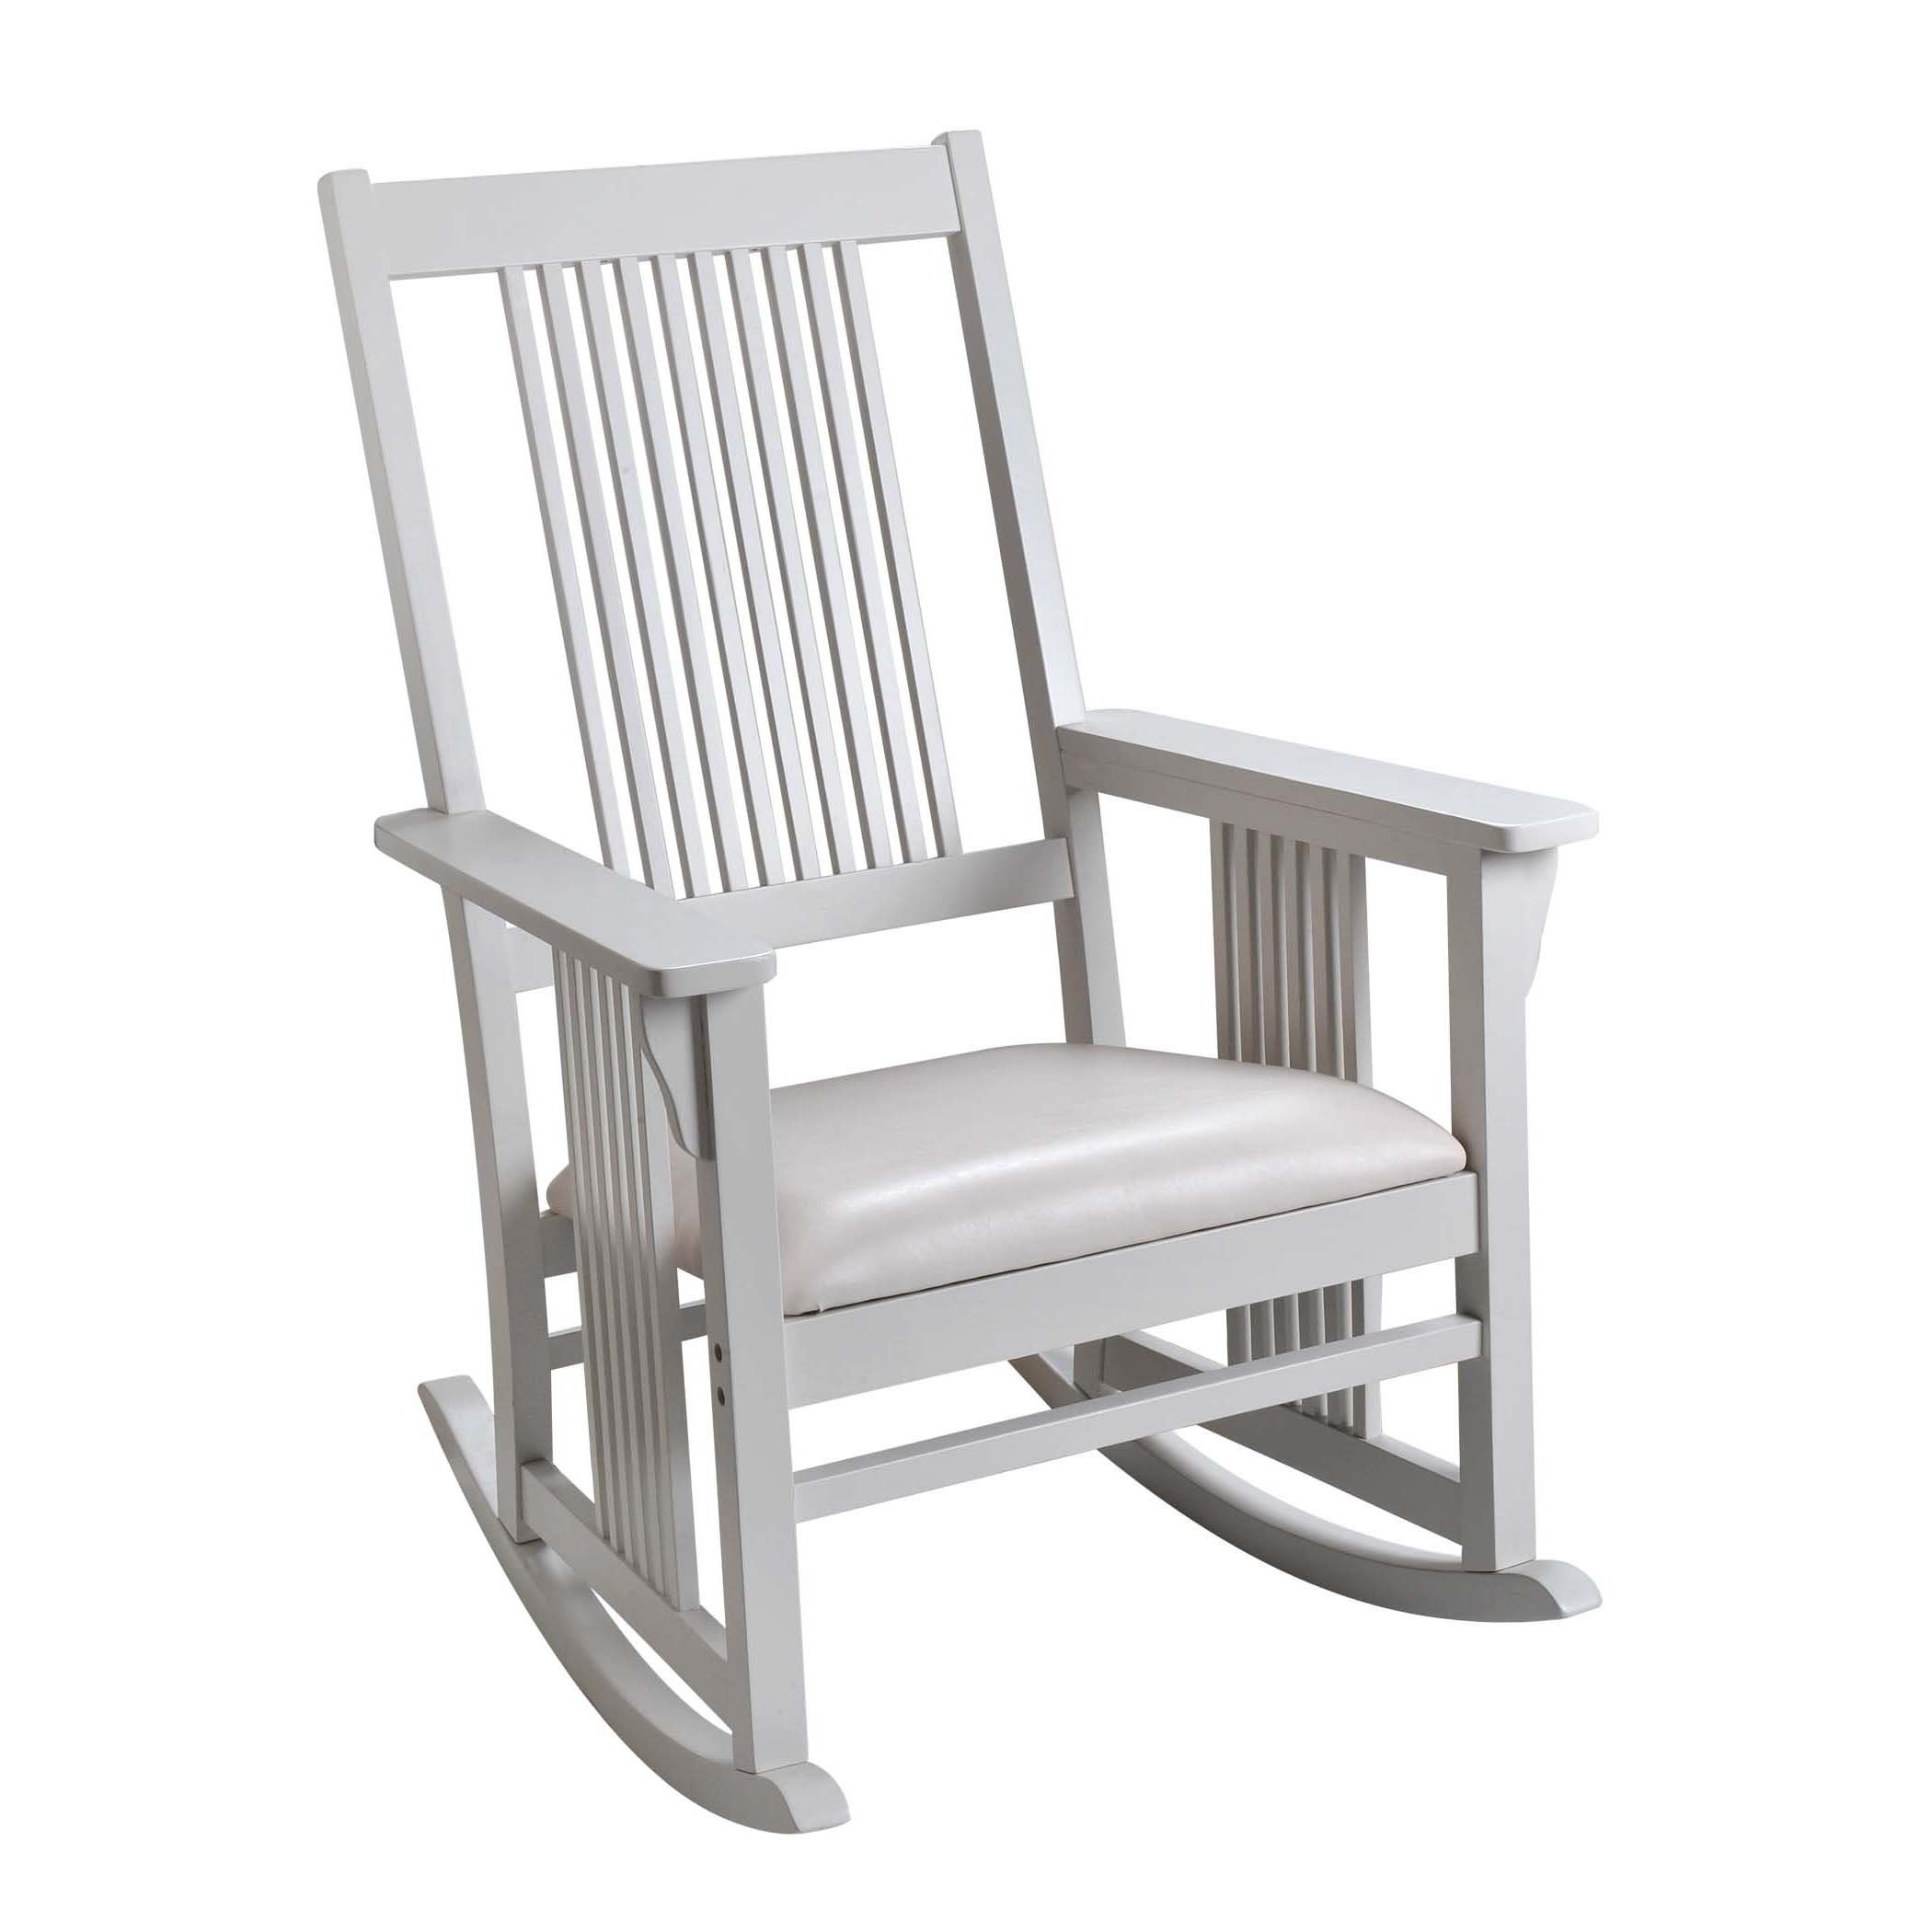 Giftmark Mission Style Rocking Chair with Upholstered Seat, Style A, White